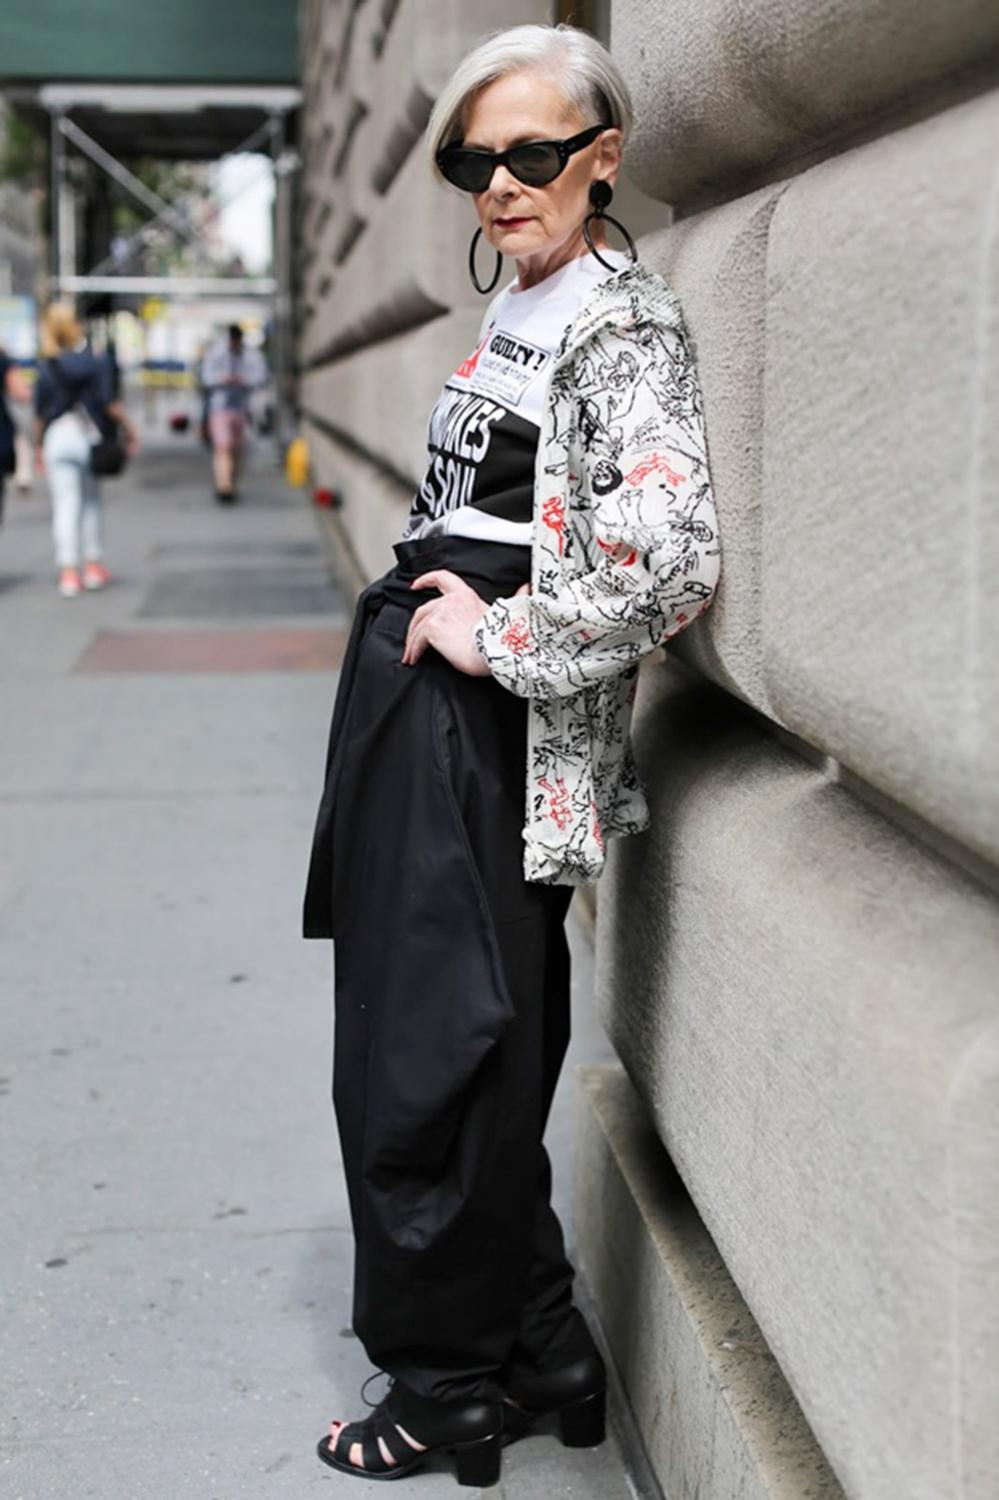 lyn slater, accidentail icon, style icon best age